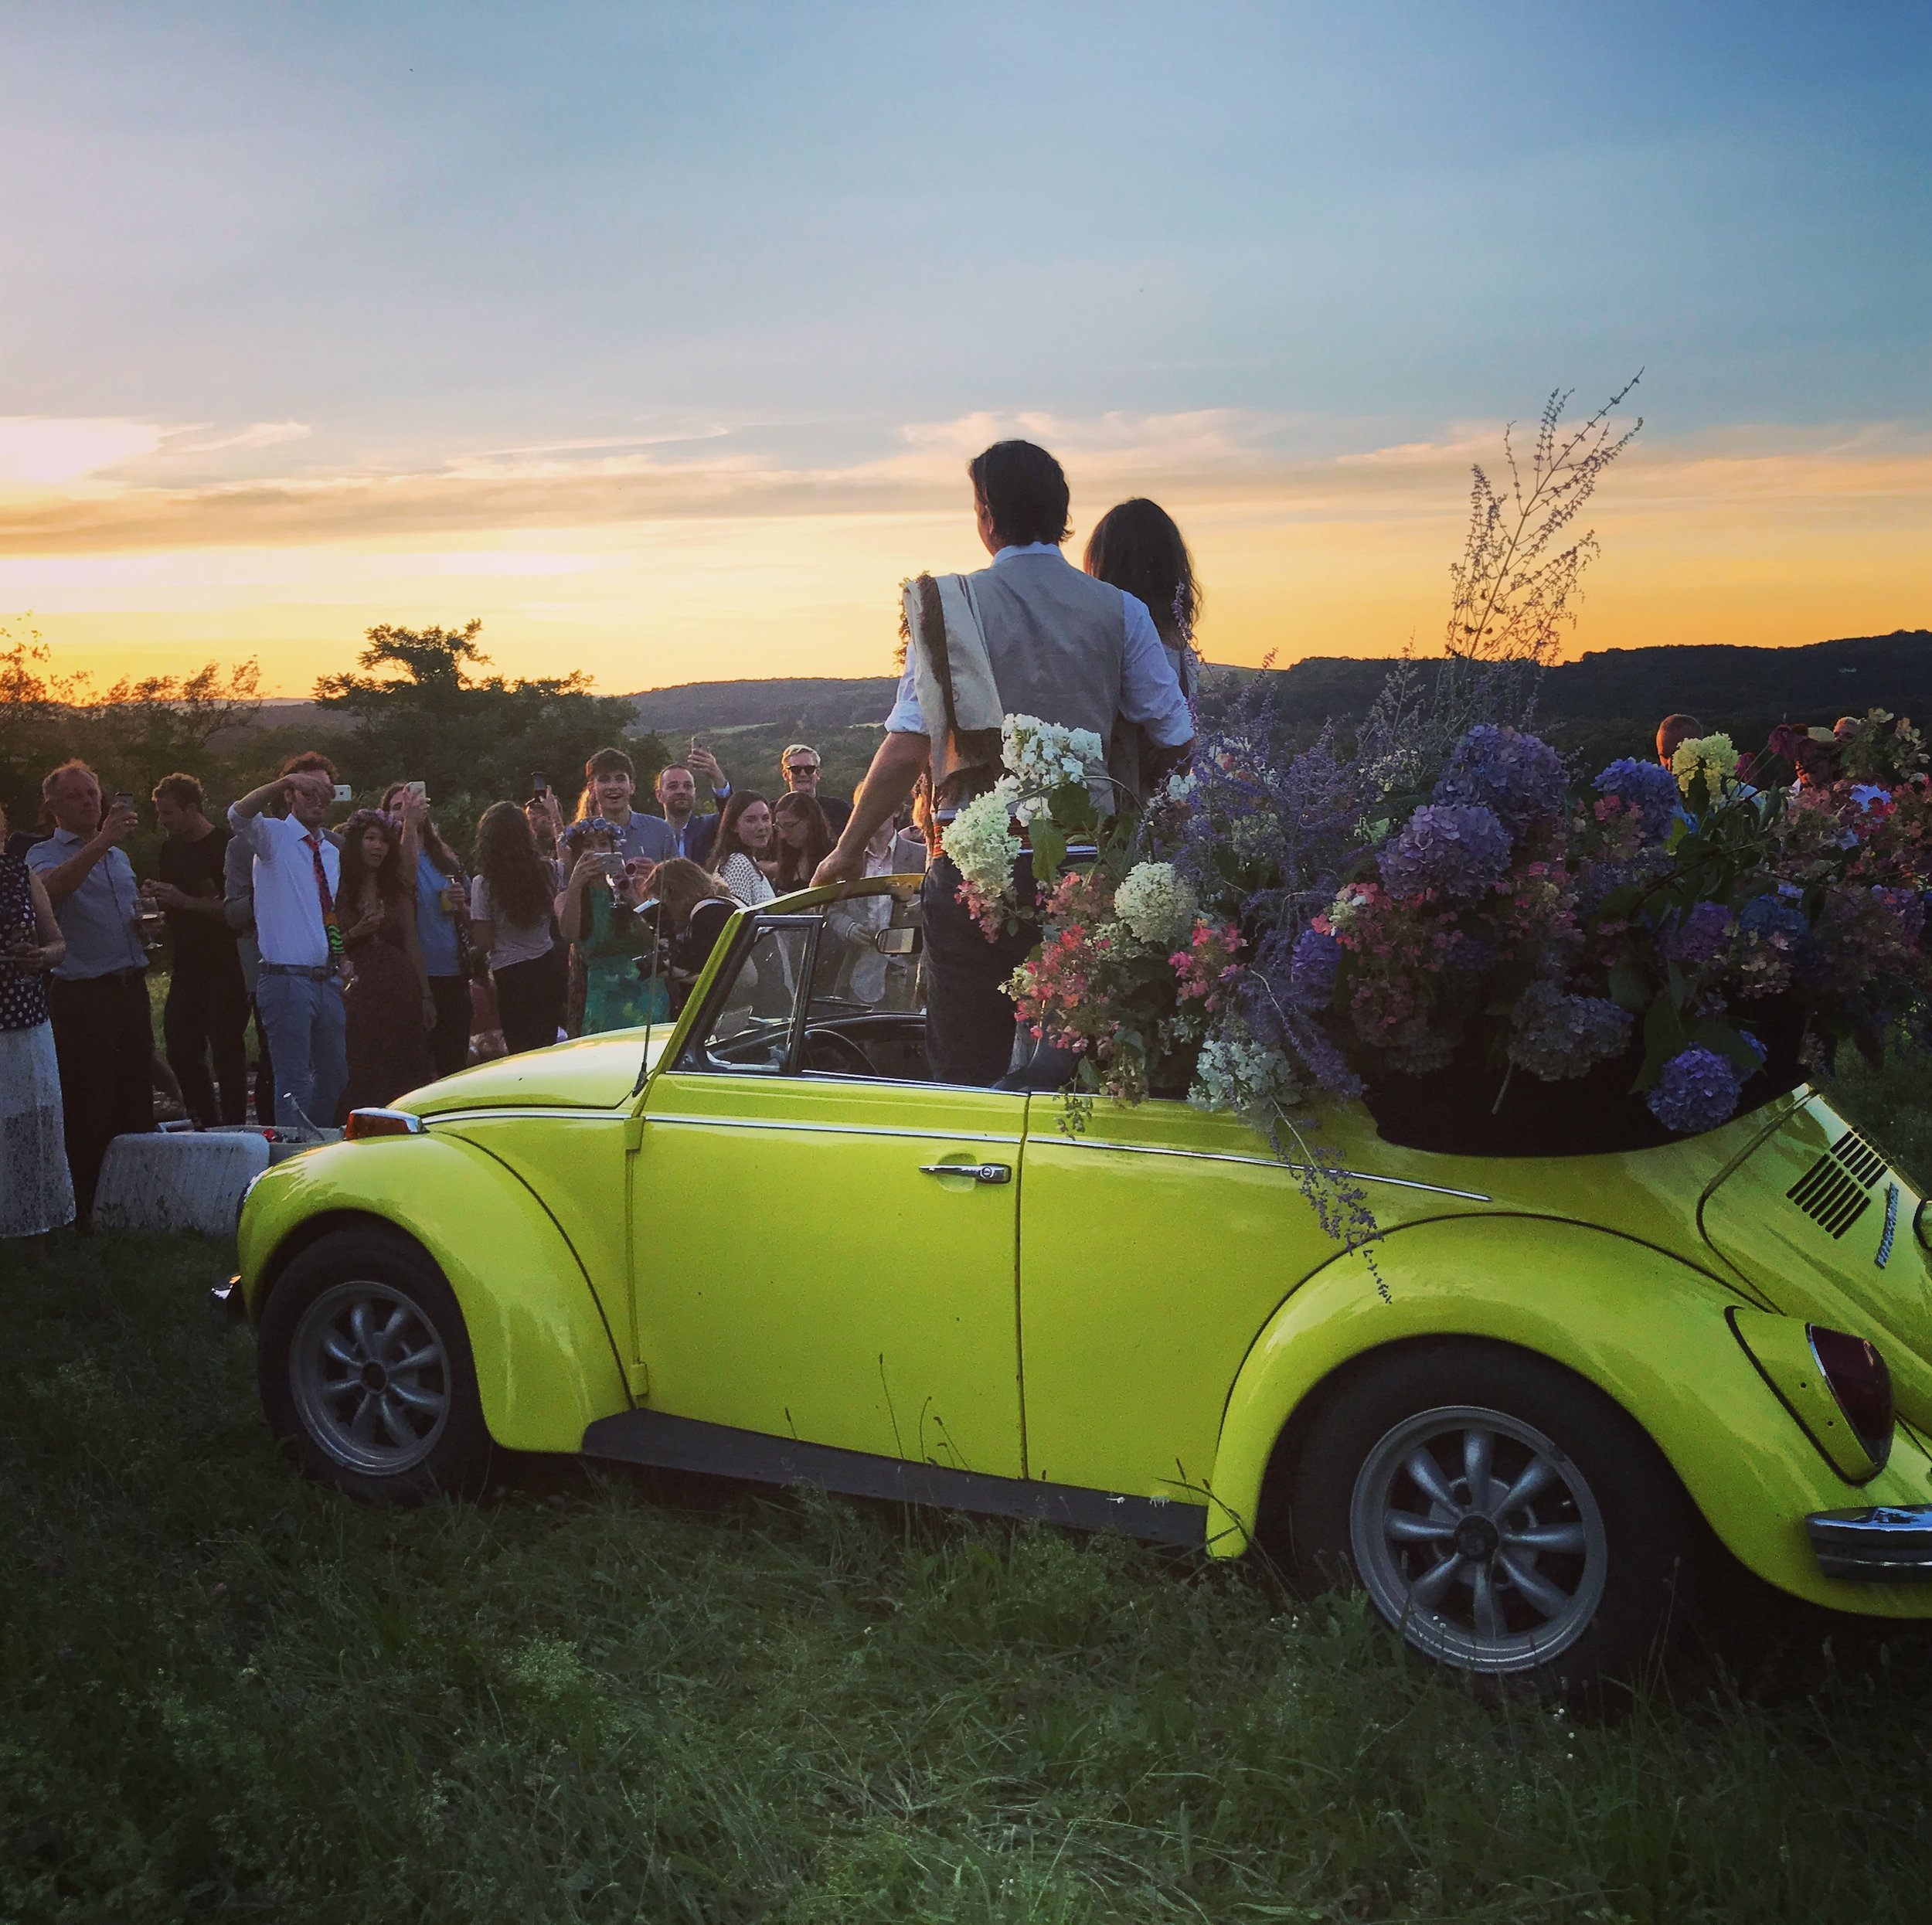 hudson-valley-farm-weddings-pioneer-farm-weddings-warwick-ny-bride-and-groom-just-married-yellow-vintage-volkswagen-beetle-flowers.jpg